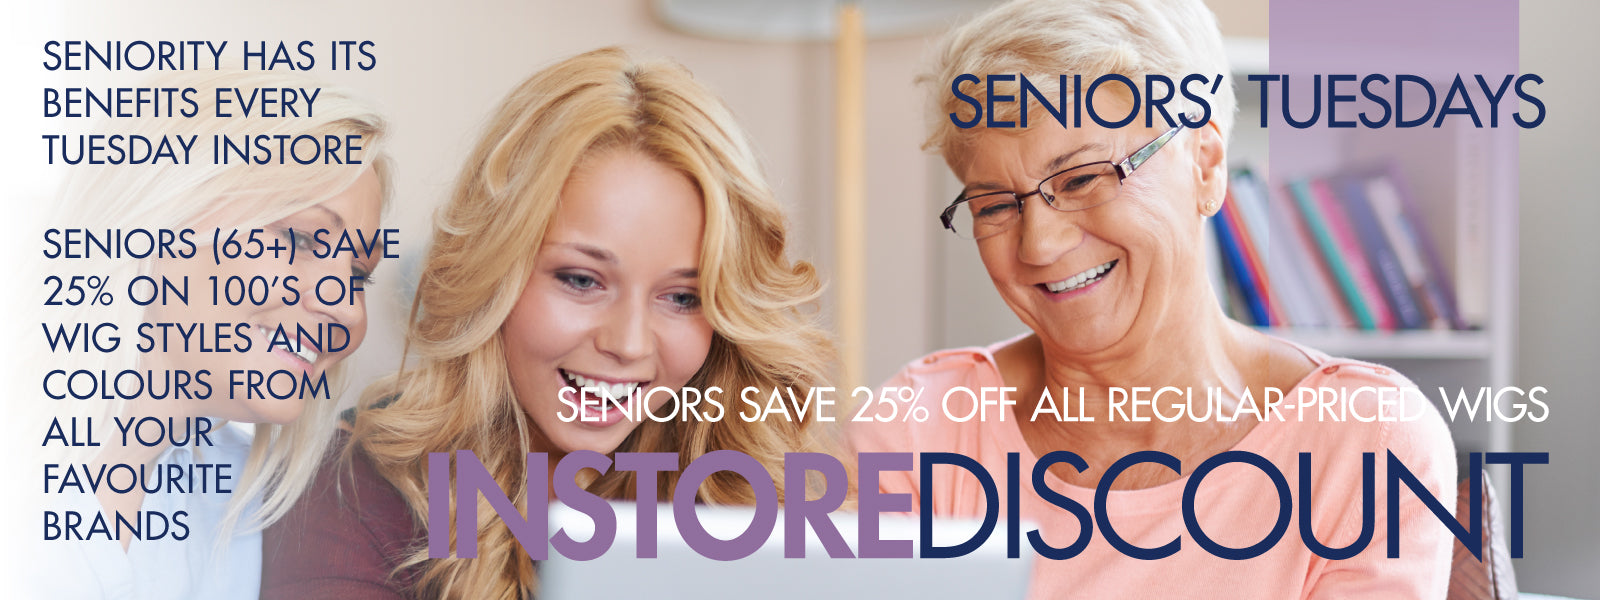 Seniors save 25% every Tuesday instore at Abantu